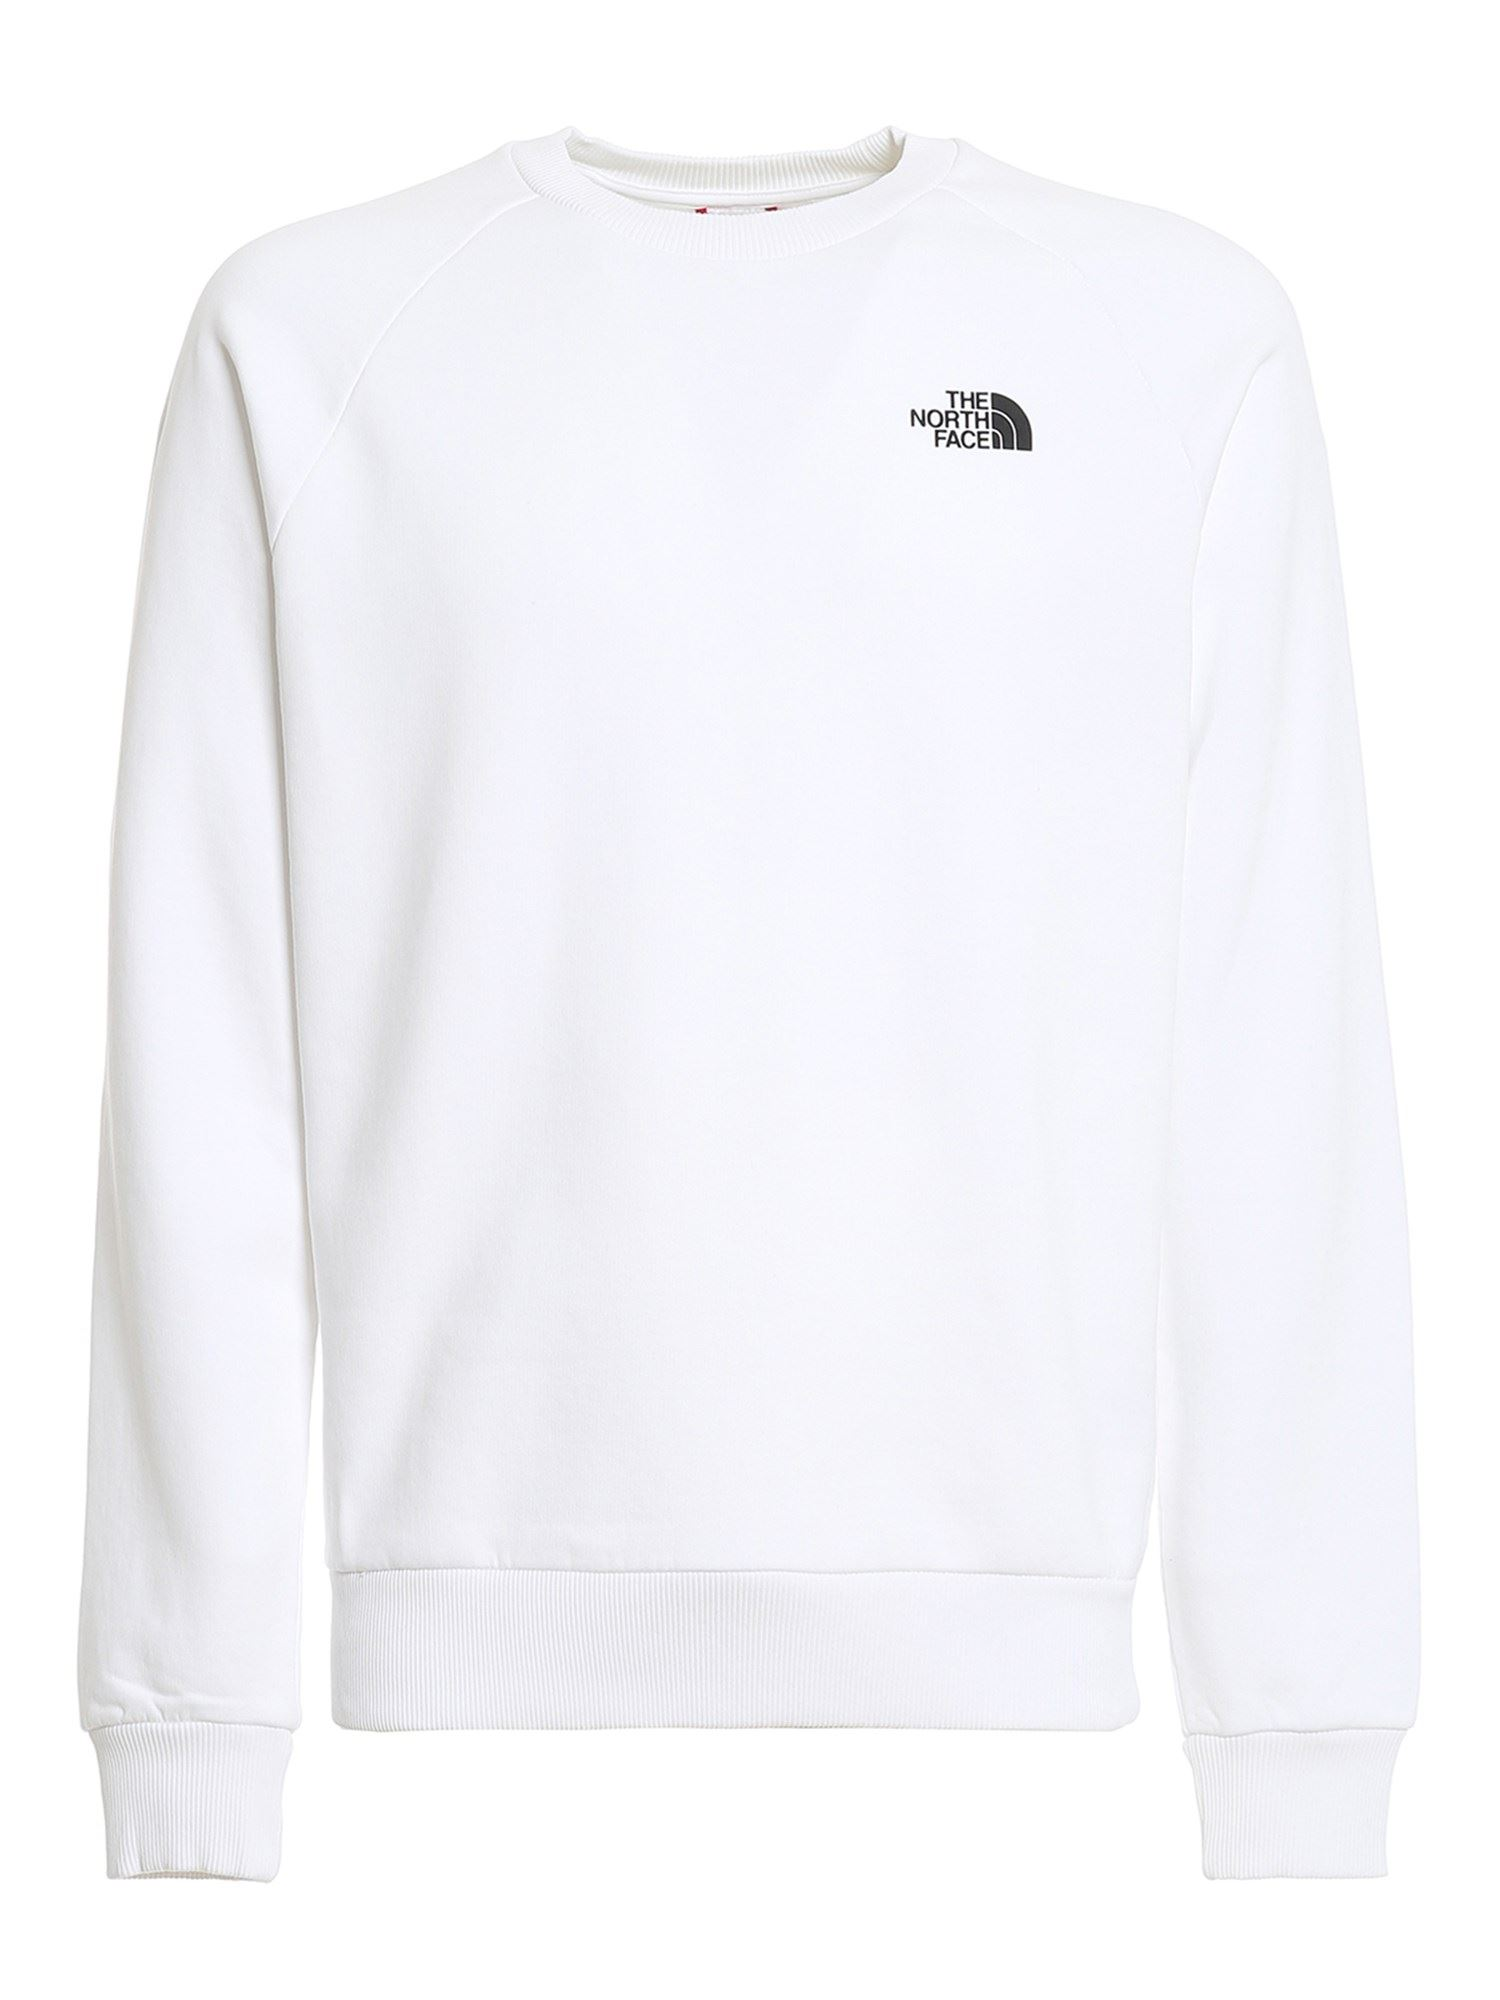 THE NORTH FACE RED BOX COTTON SWEATSHIRT IN WHITE